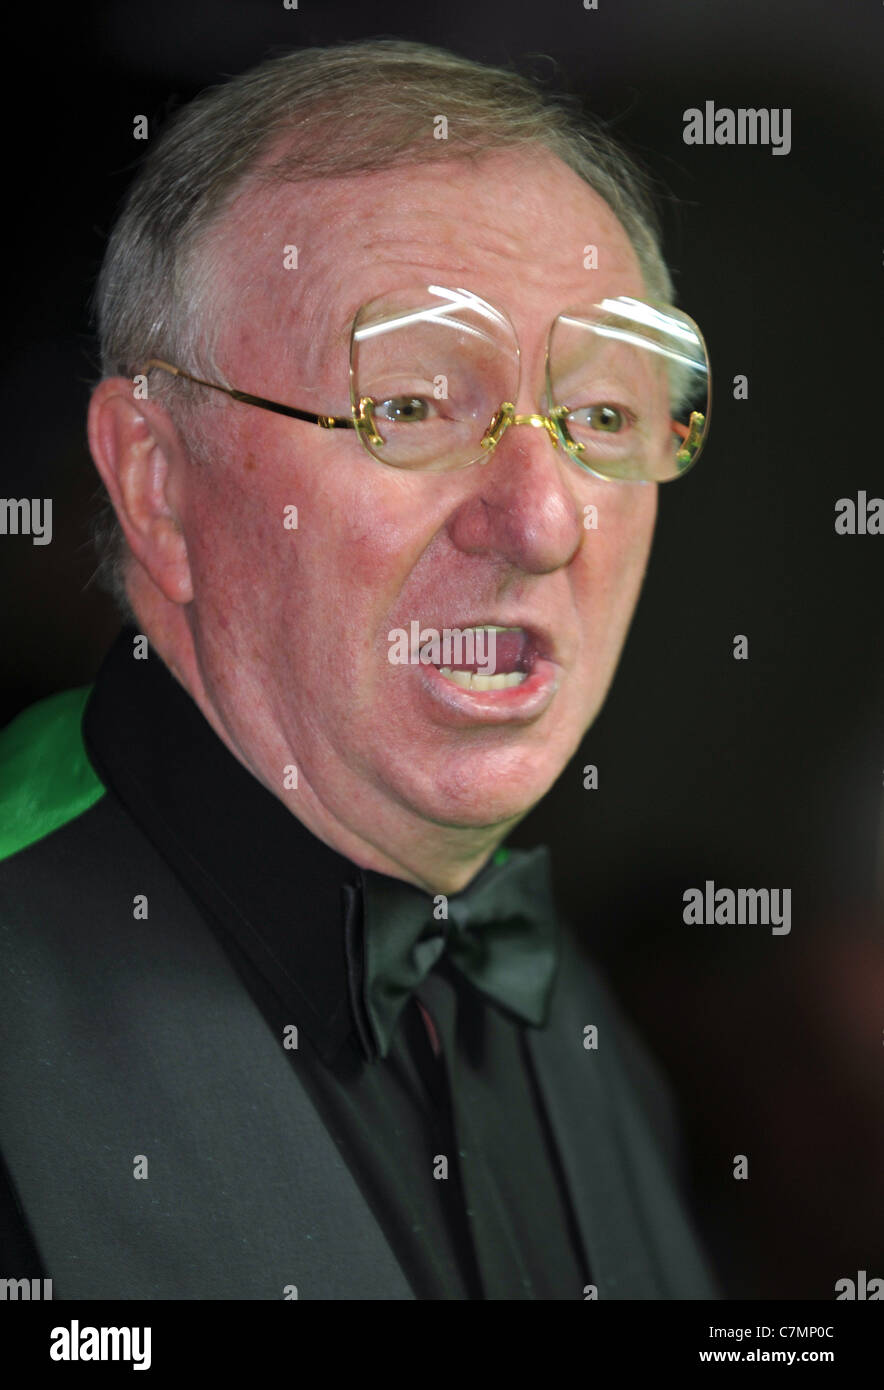 UK, Dennis Taylor, former World Snooker Champion and BBC commentator playing a set of exhibition games Stock Photo